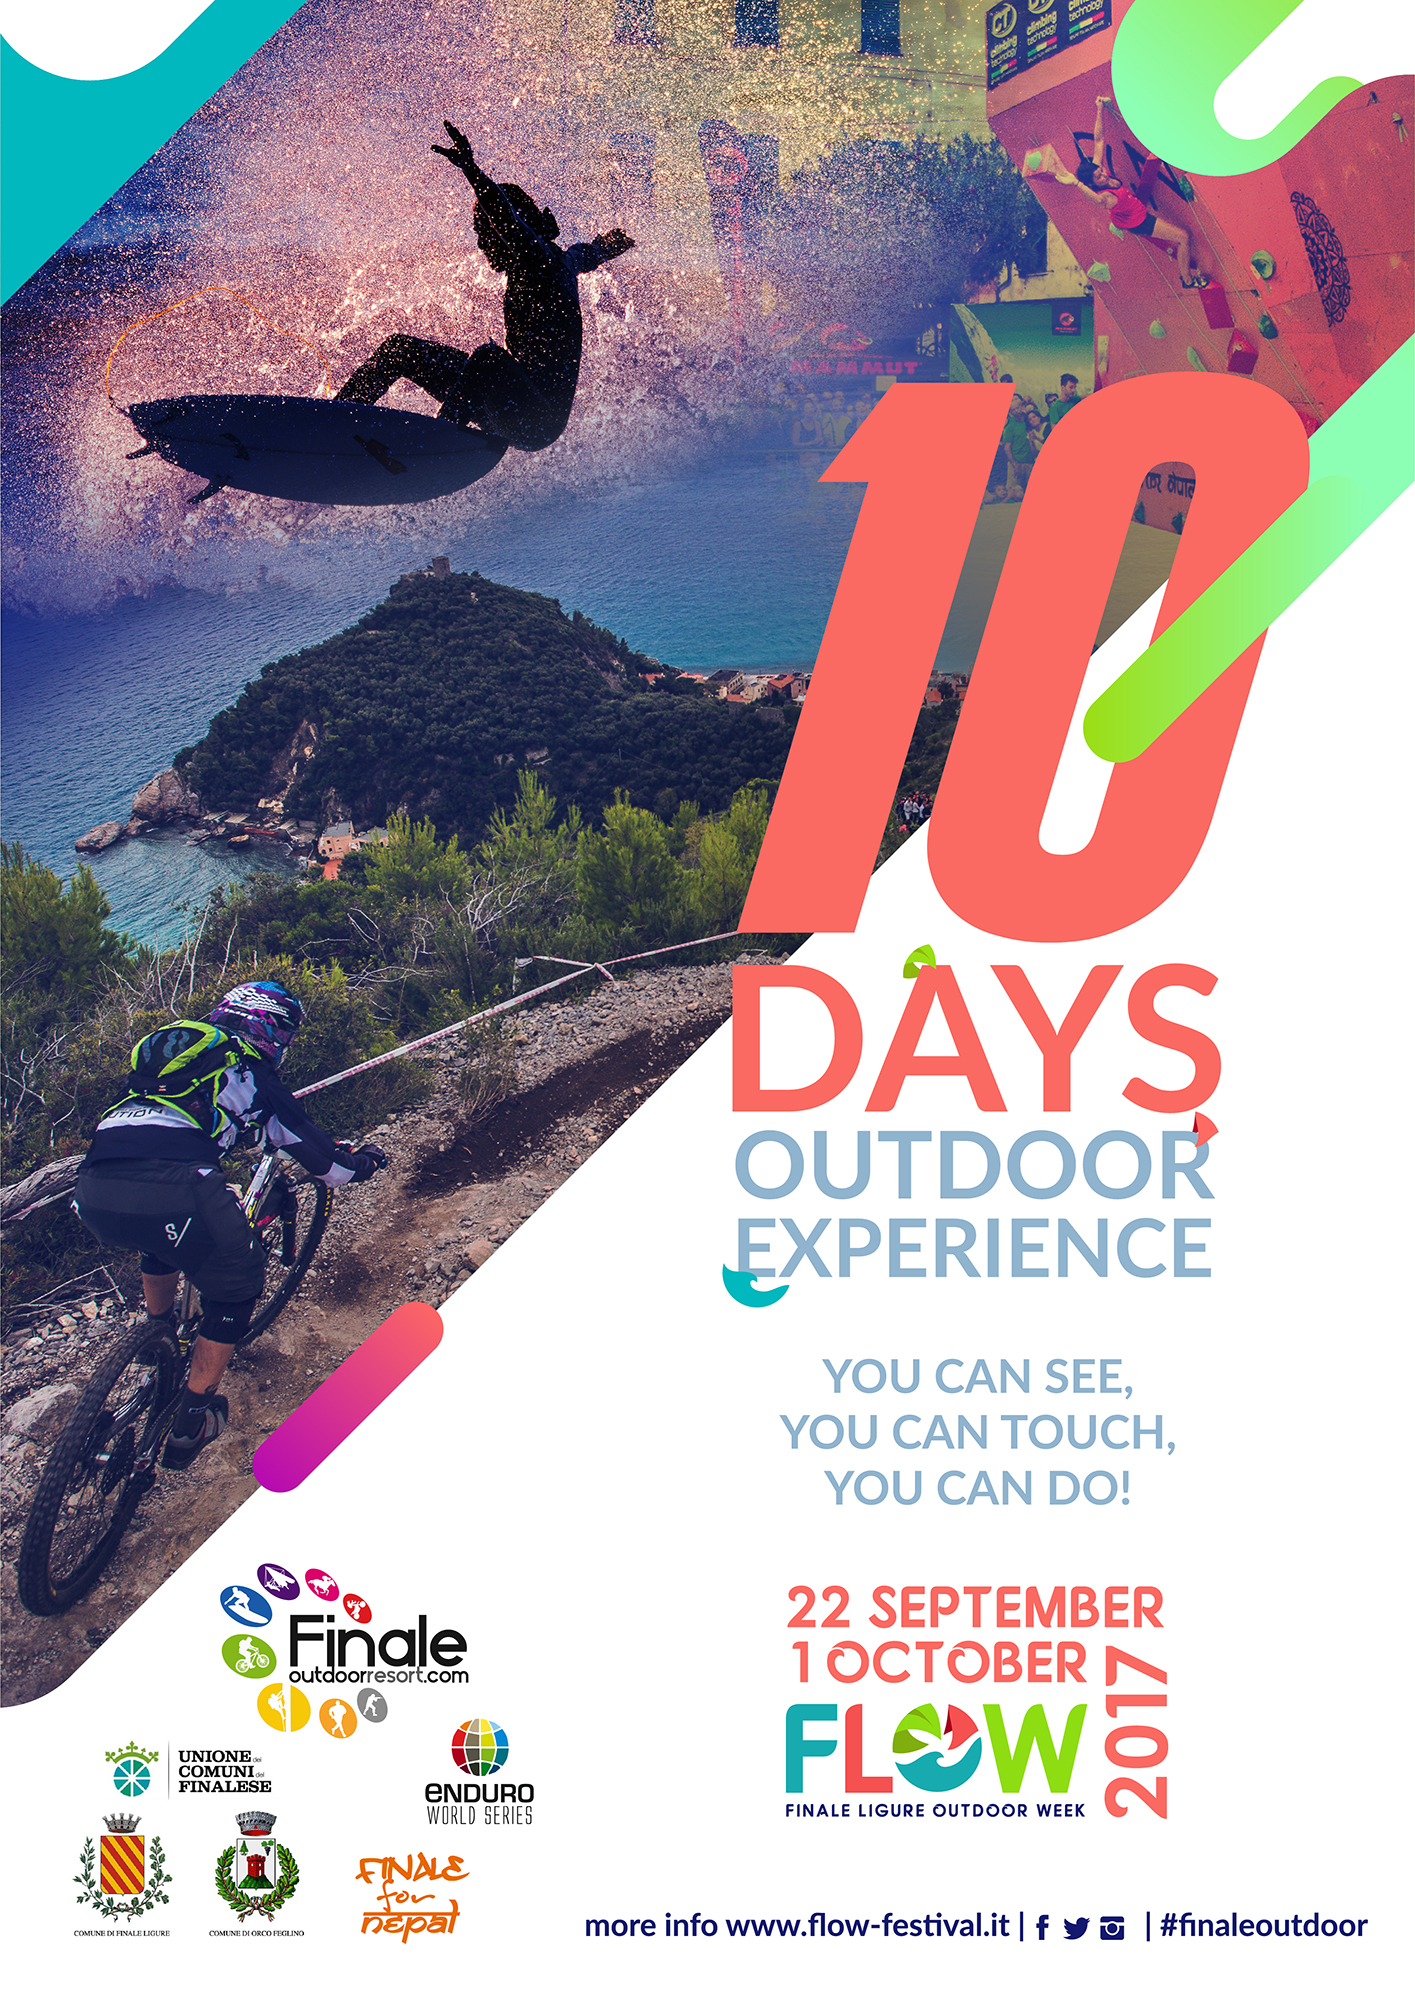 FINALE LIGURE OUTDOOR WEEK 2017: EXPERIENCE THE OUTDOORS TO THE FULL